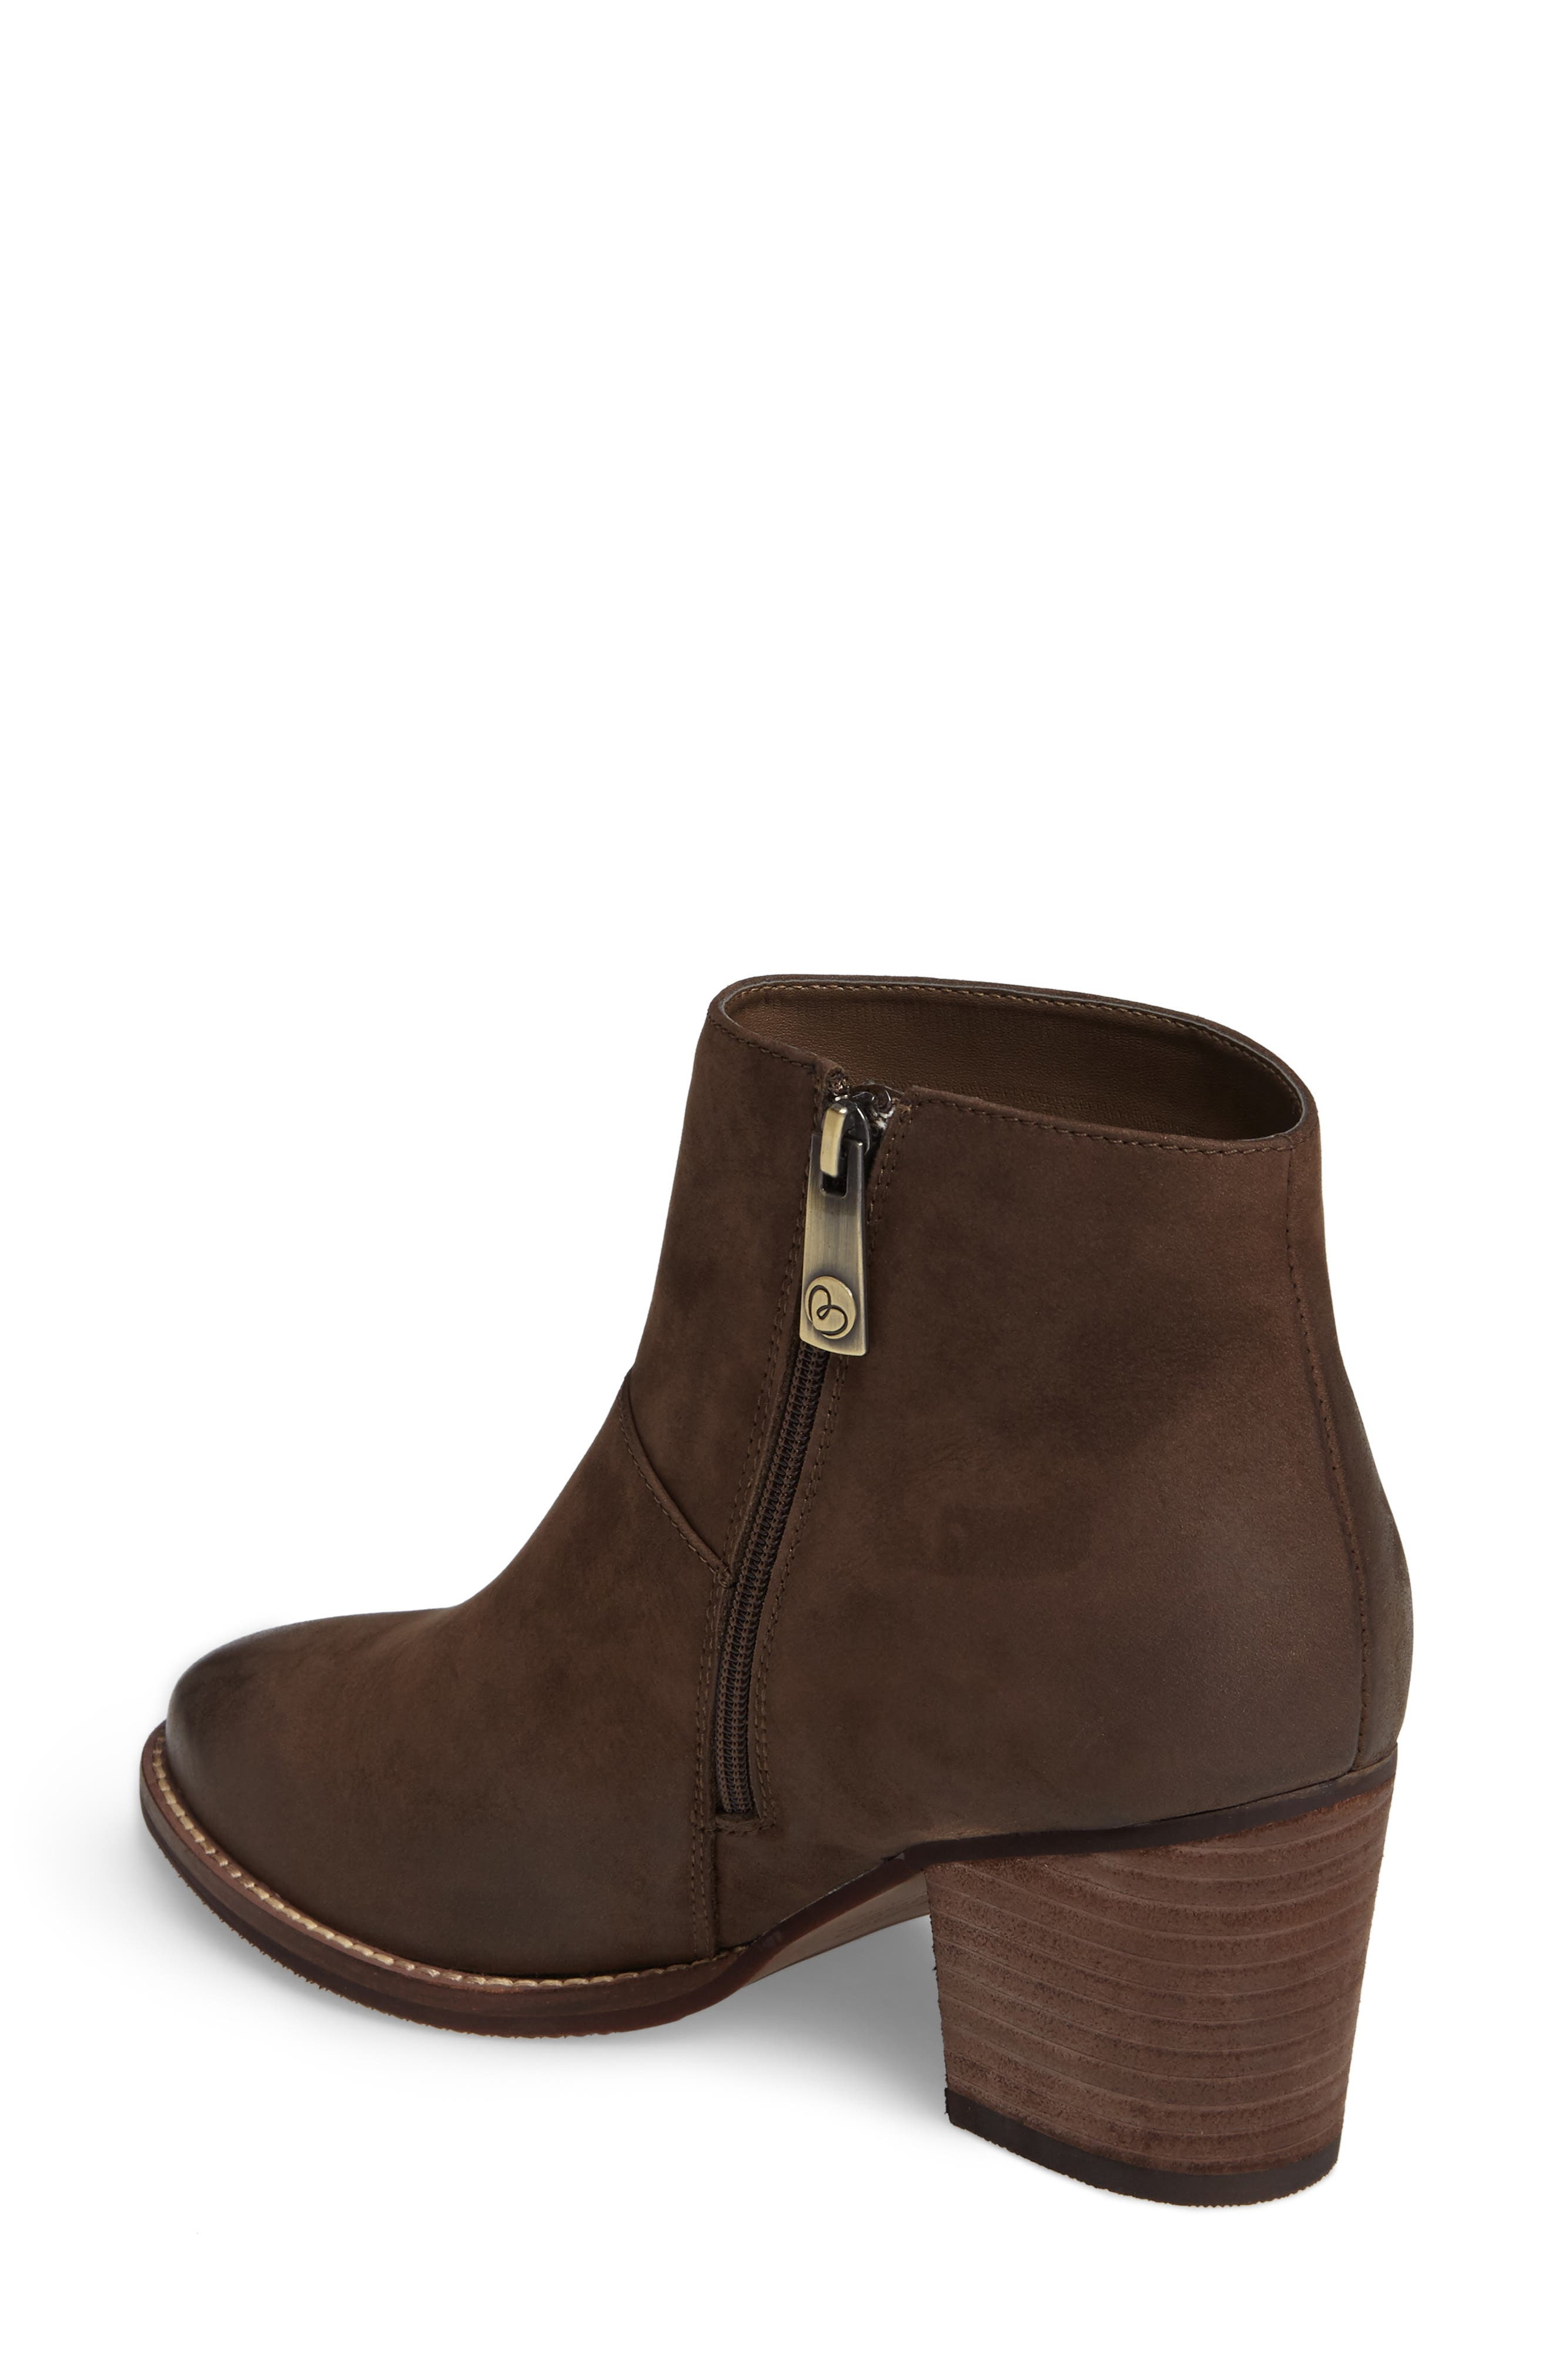 Nelli Waterproof Bootie,                             Alternate thumbnail 2, color,                             Taupe Nubuck Leather